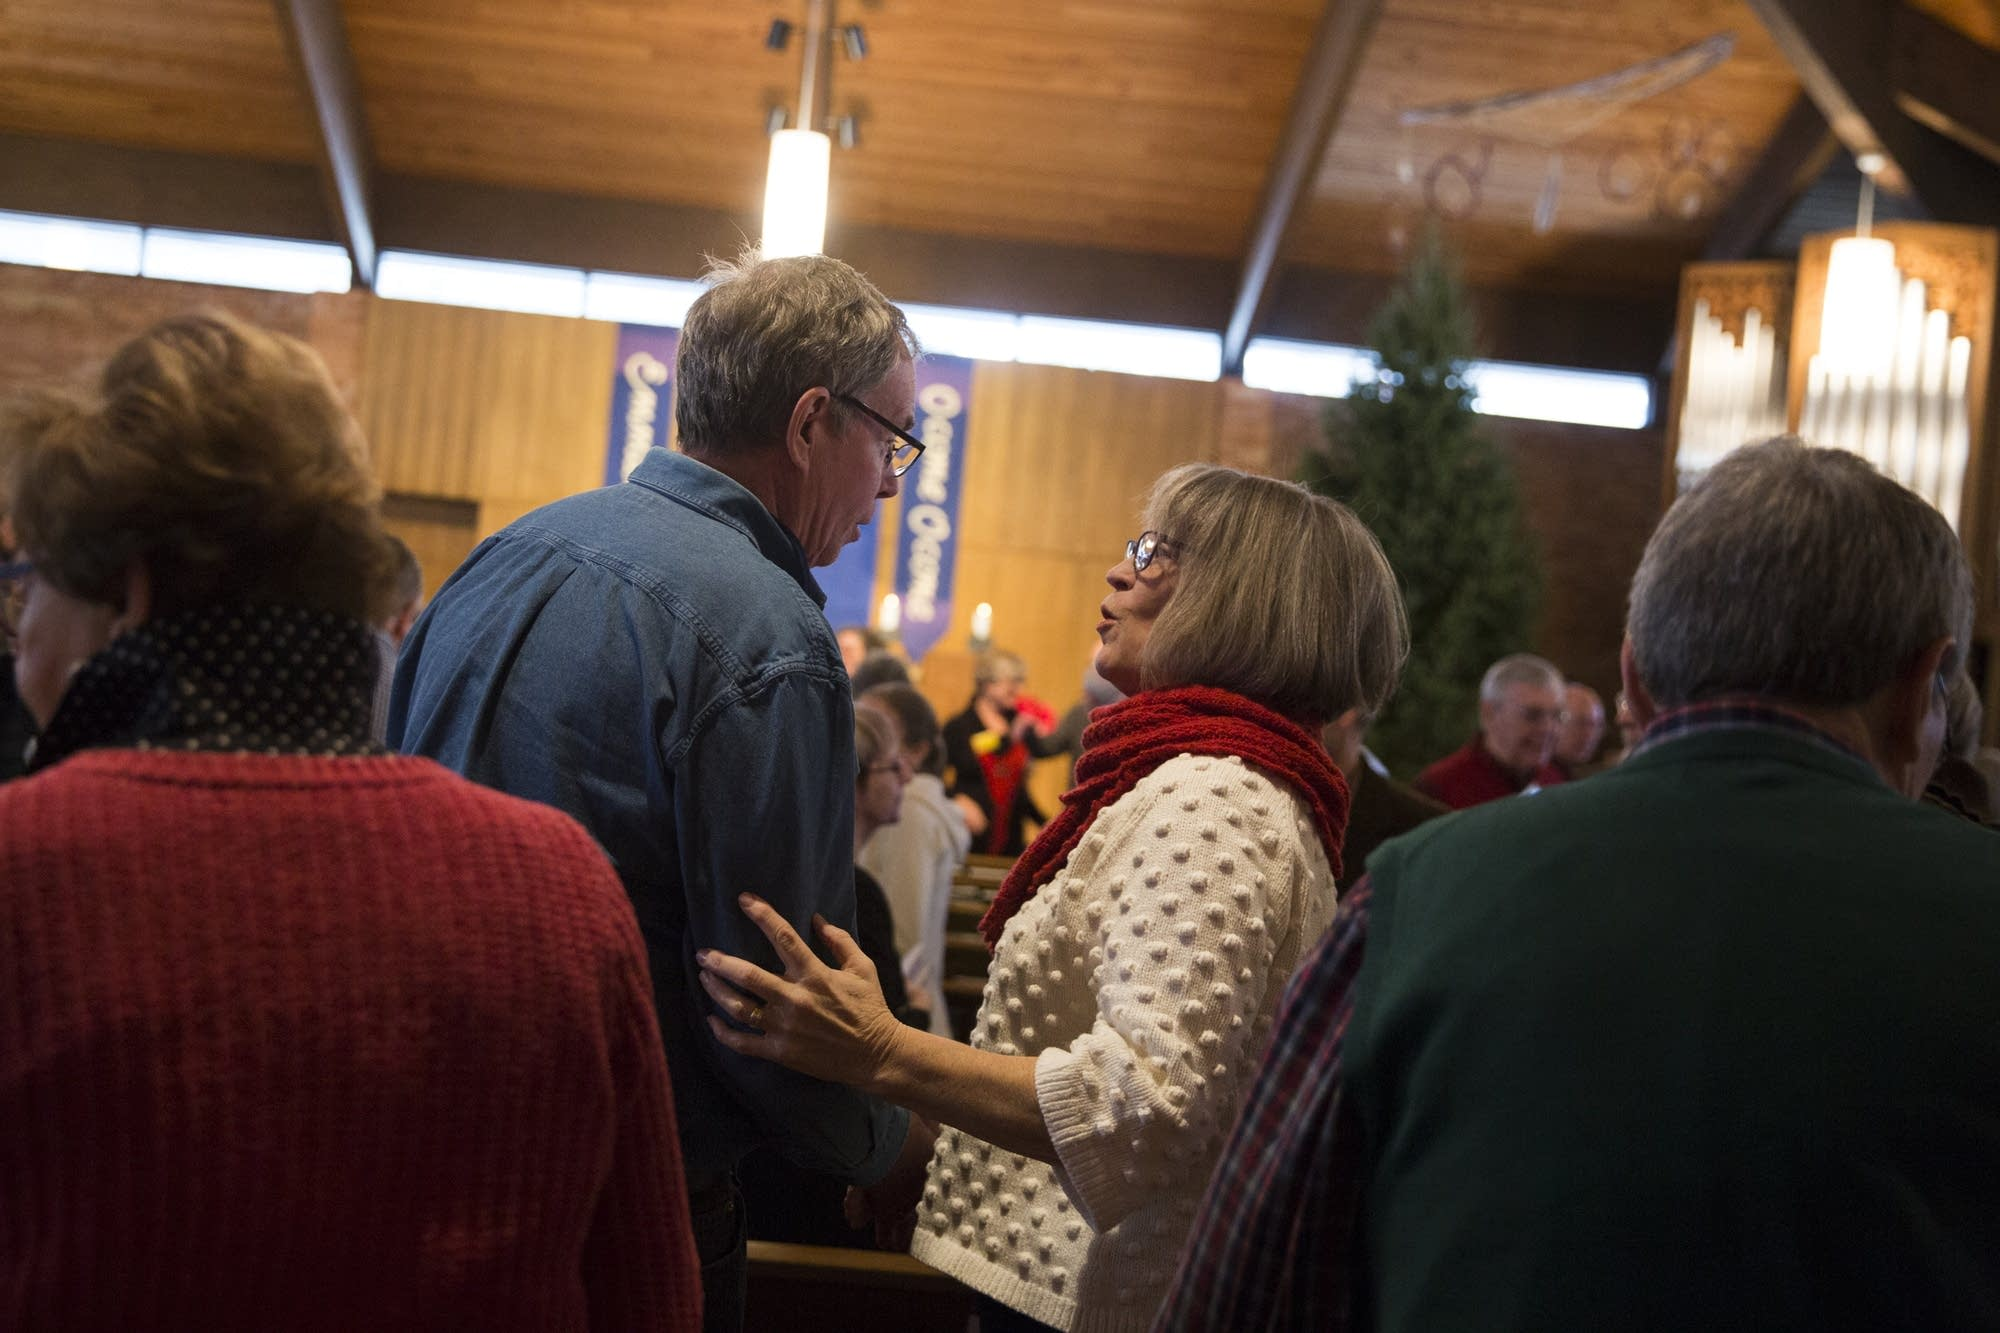 Parishioners greet each other at the beginning of services.